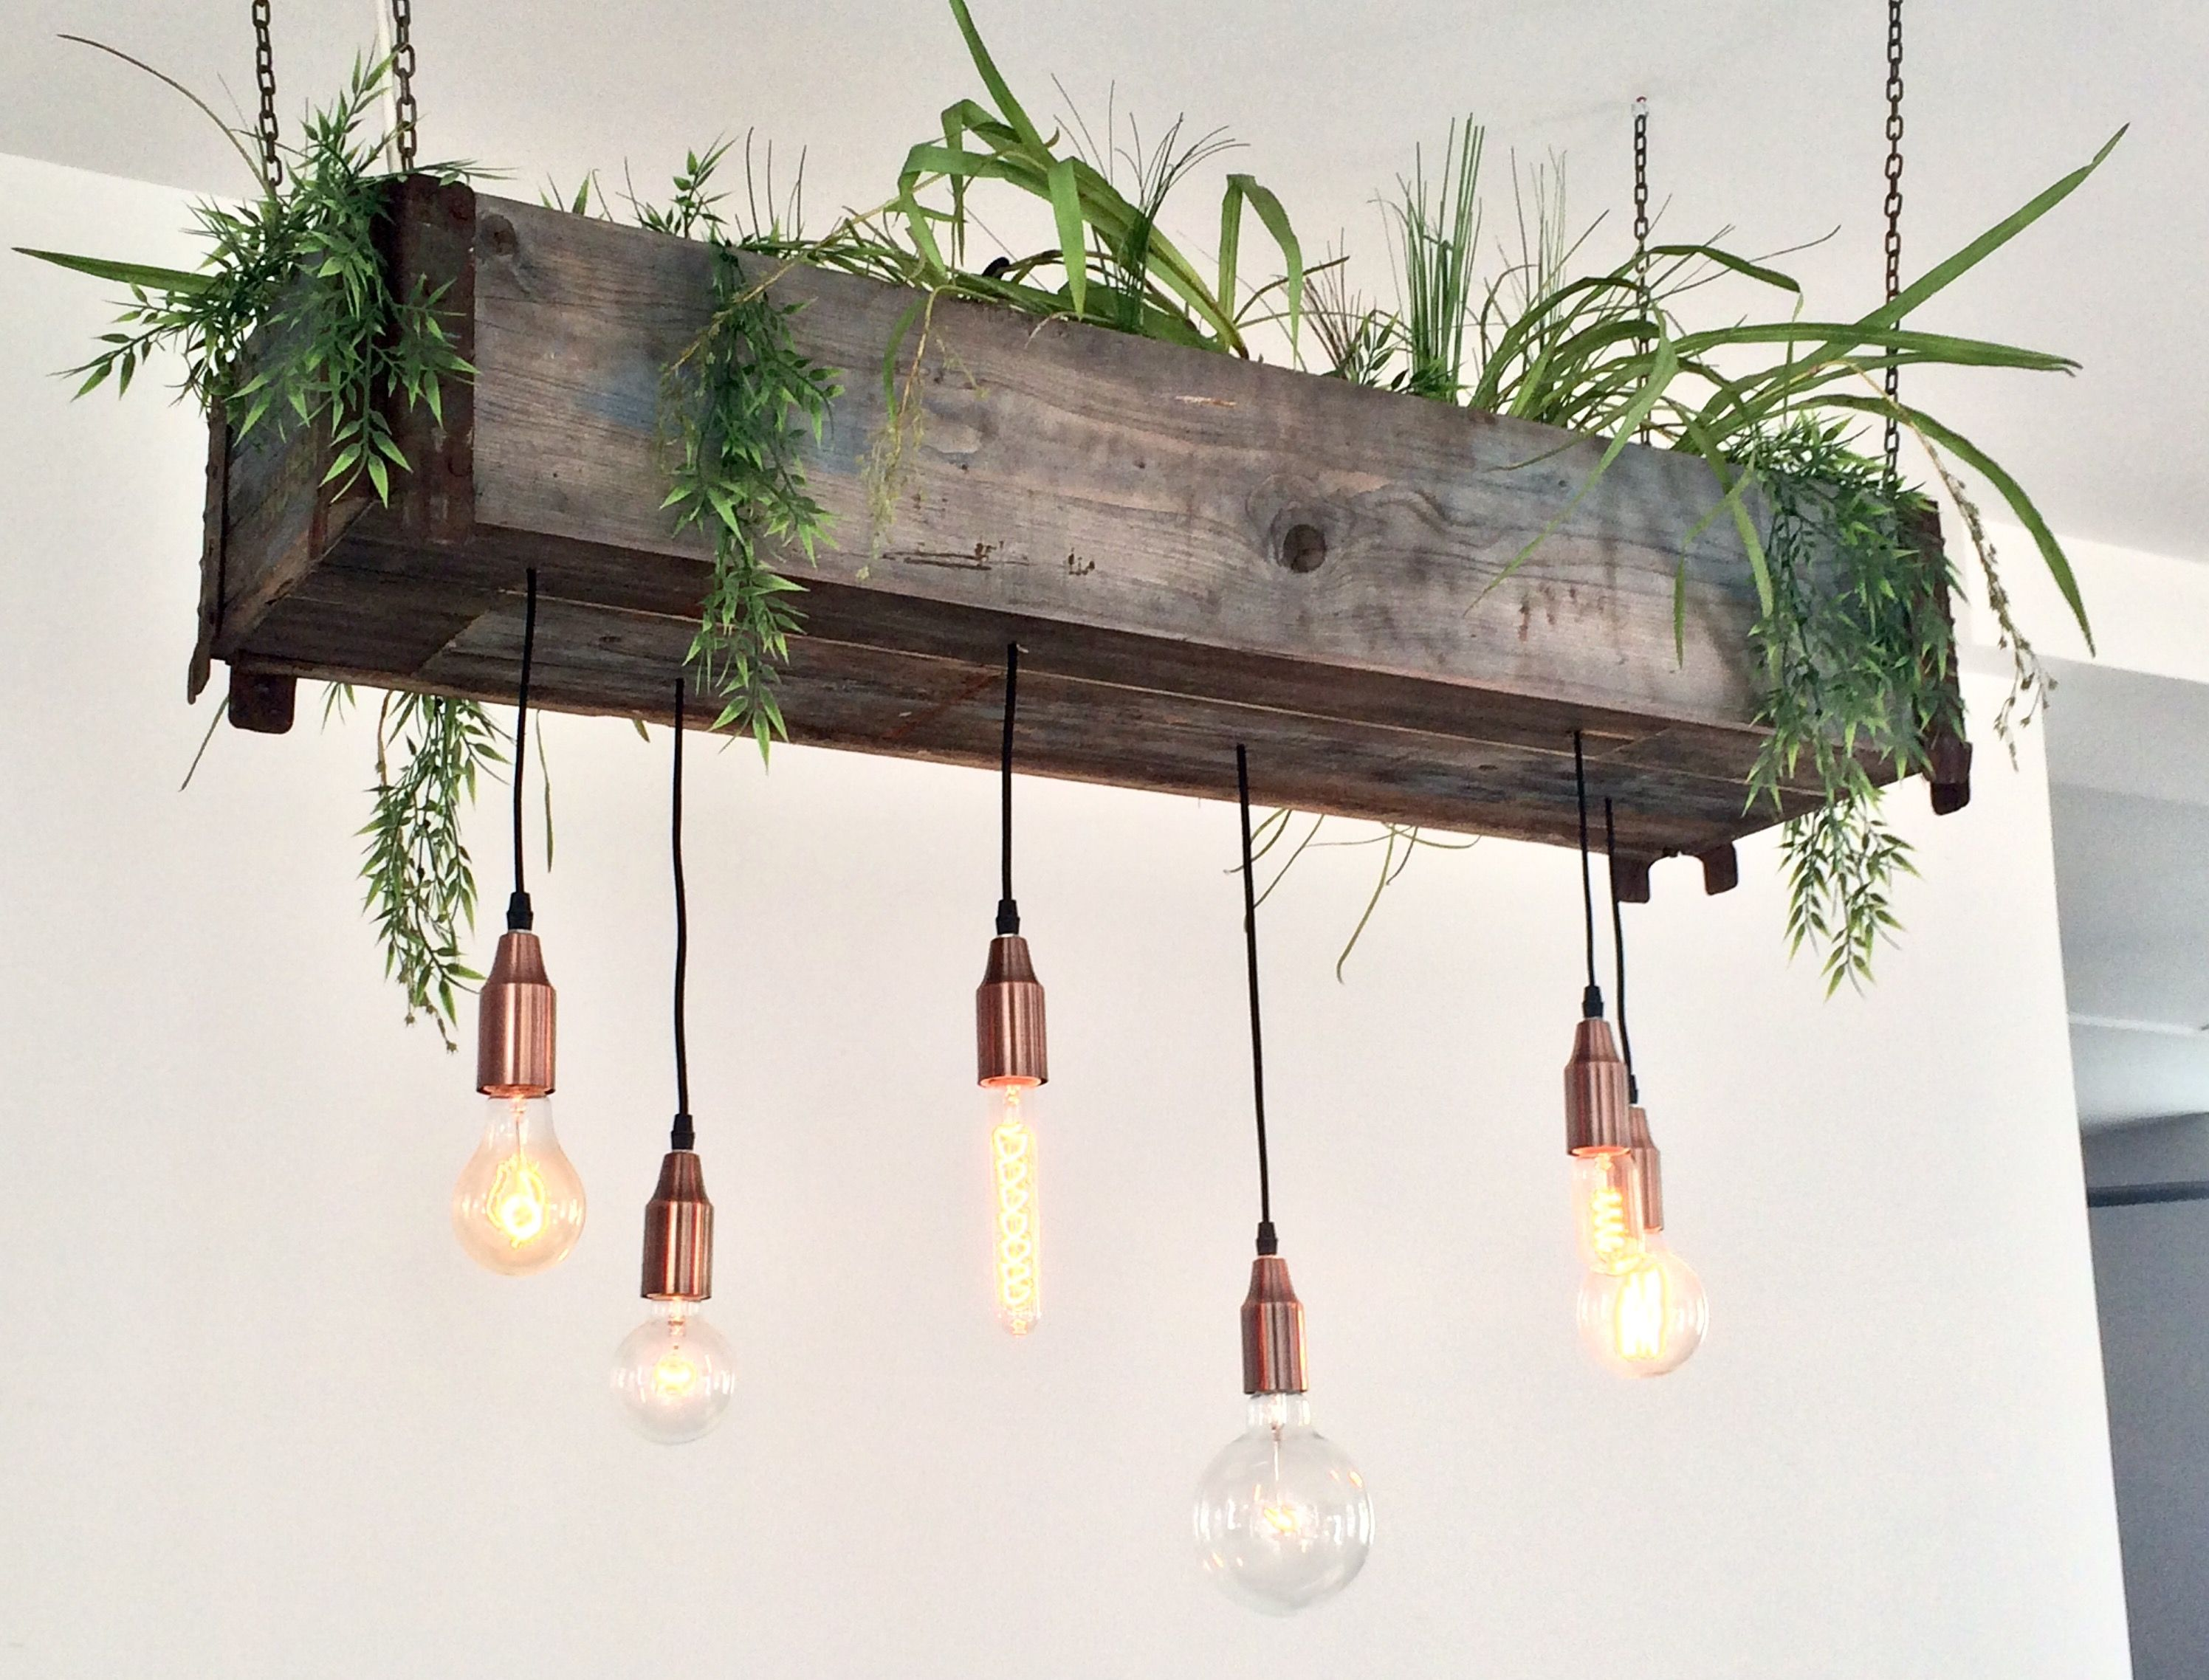 Pendant Copper Chains Lamp Hanging Plant Up Cycled Diy